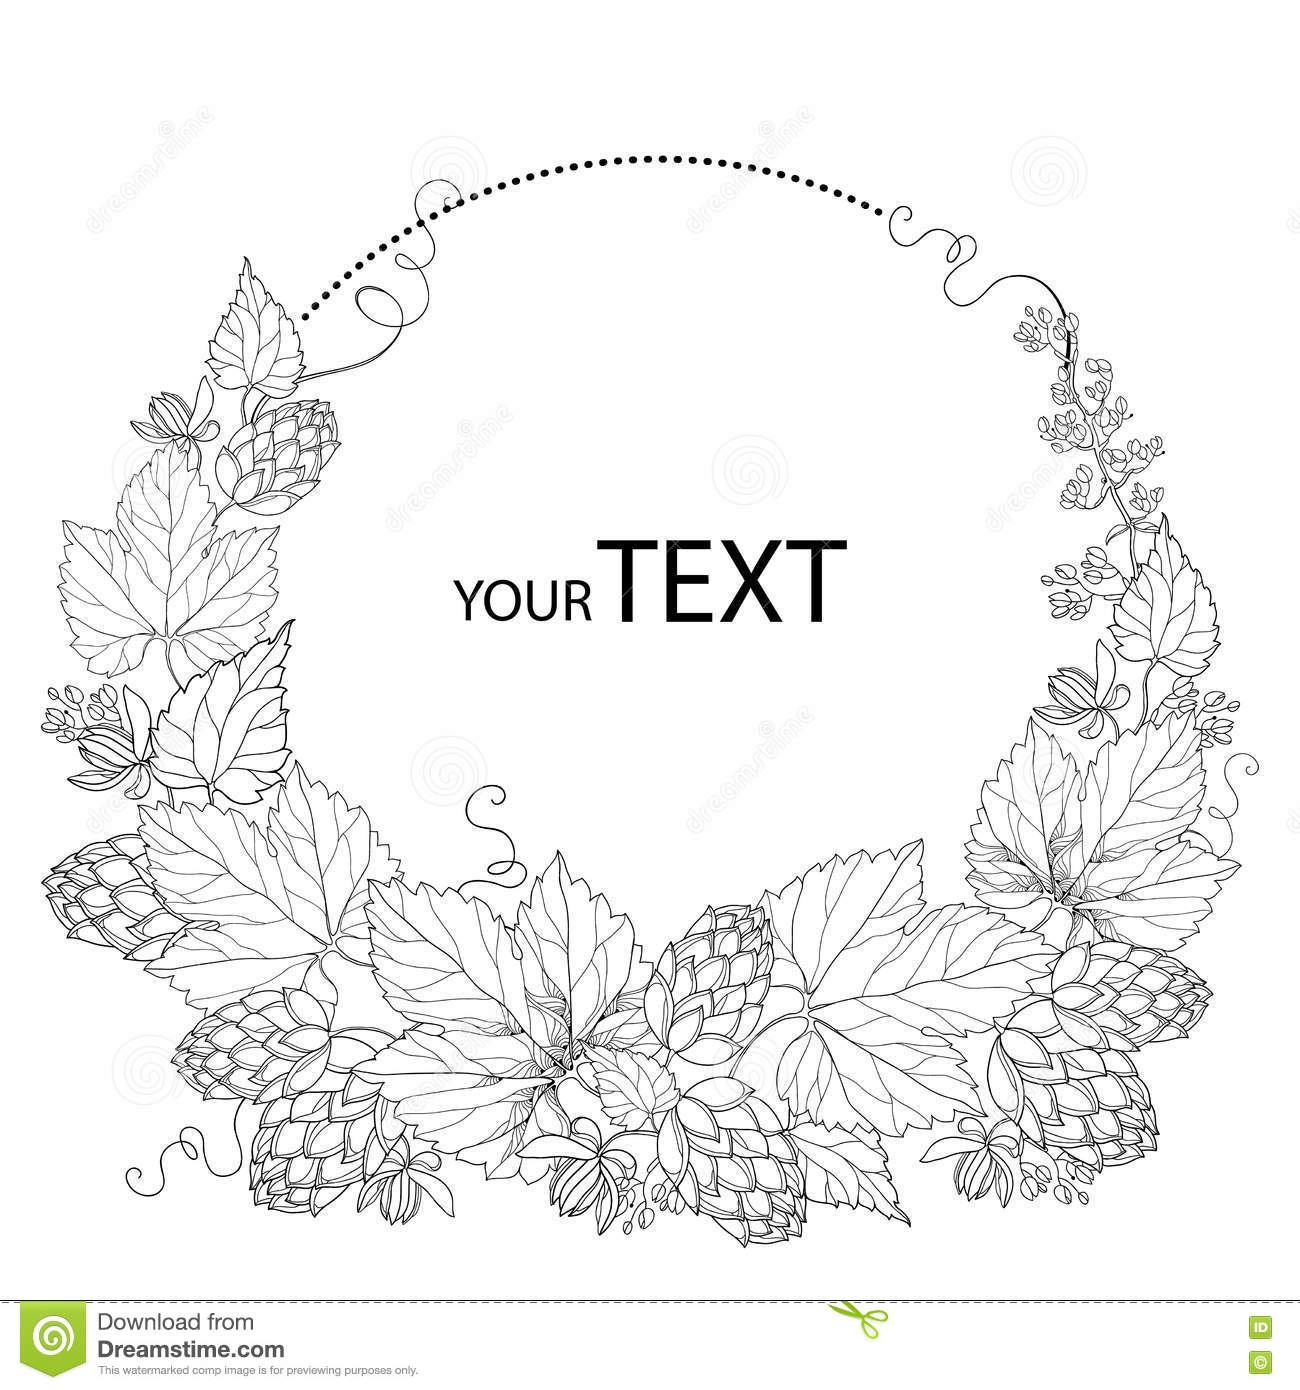 Black and white floral wreath stock vector image 65241515 - Vector Round Wreath With Ornate Hops Or Humulus Cones And Leaves In Black On White